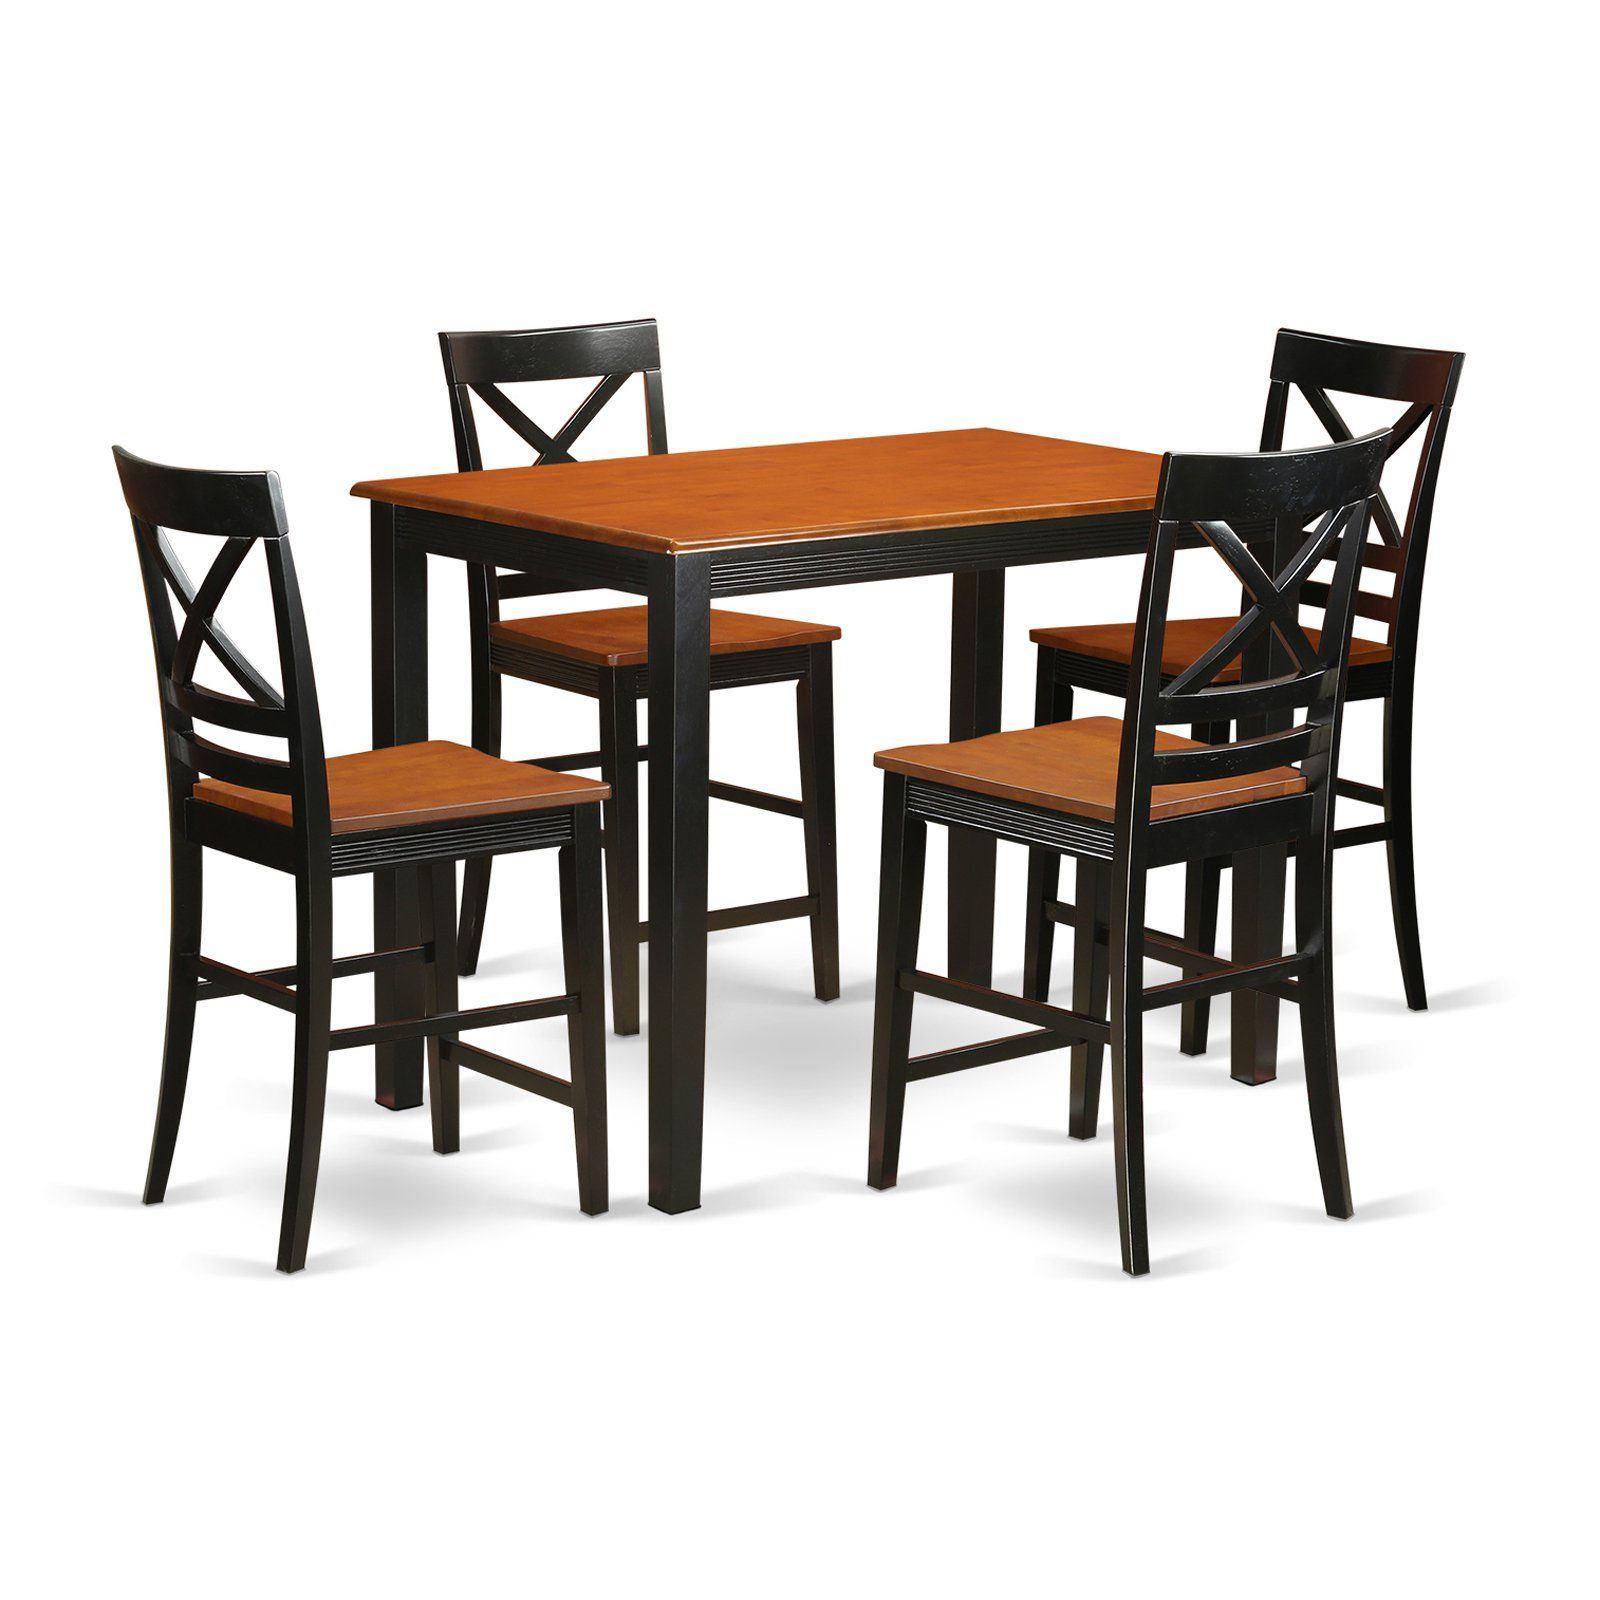 East West Furniture Yarmouth 5 Piece Cross And Ladder Dining Table